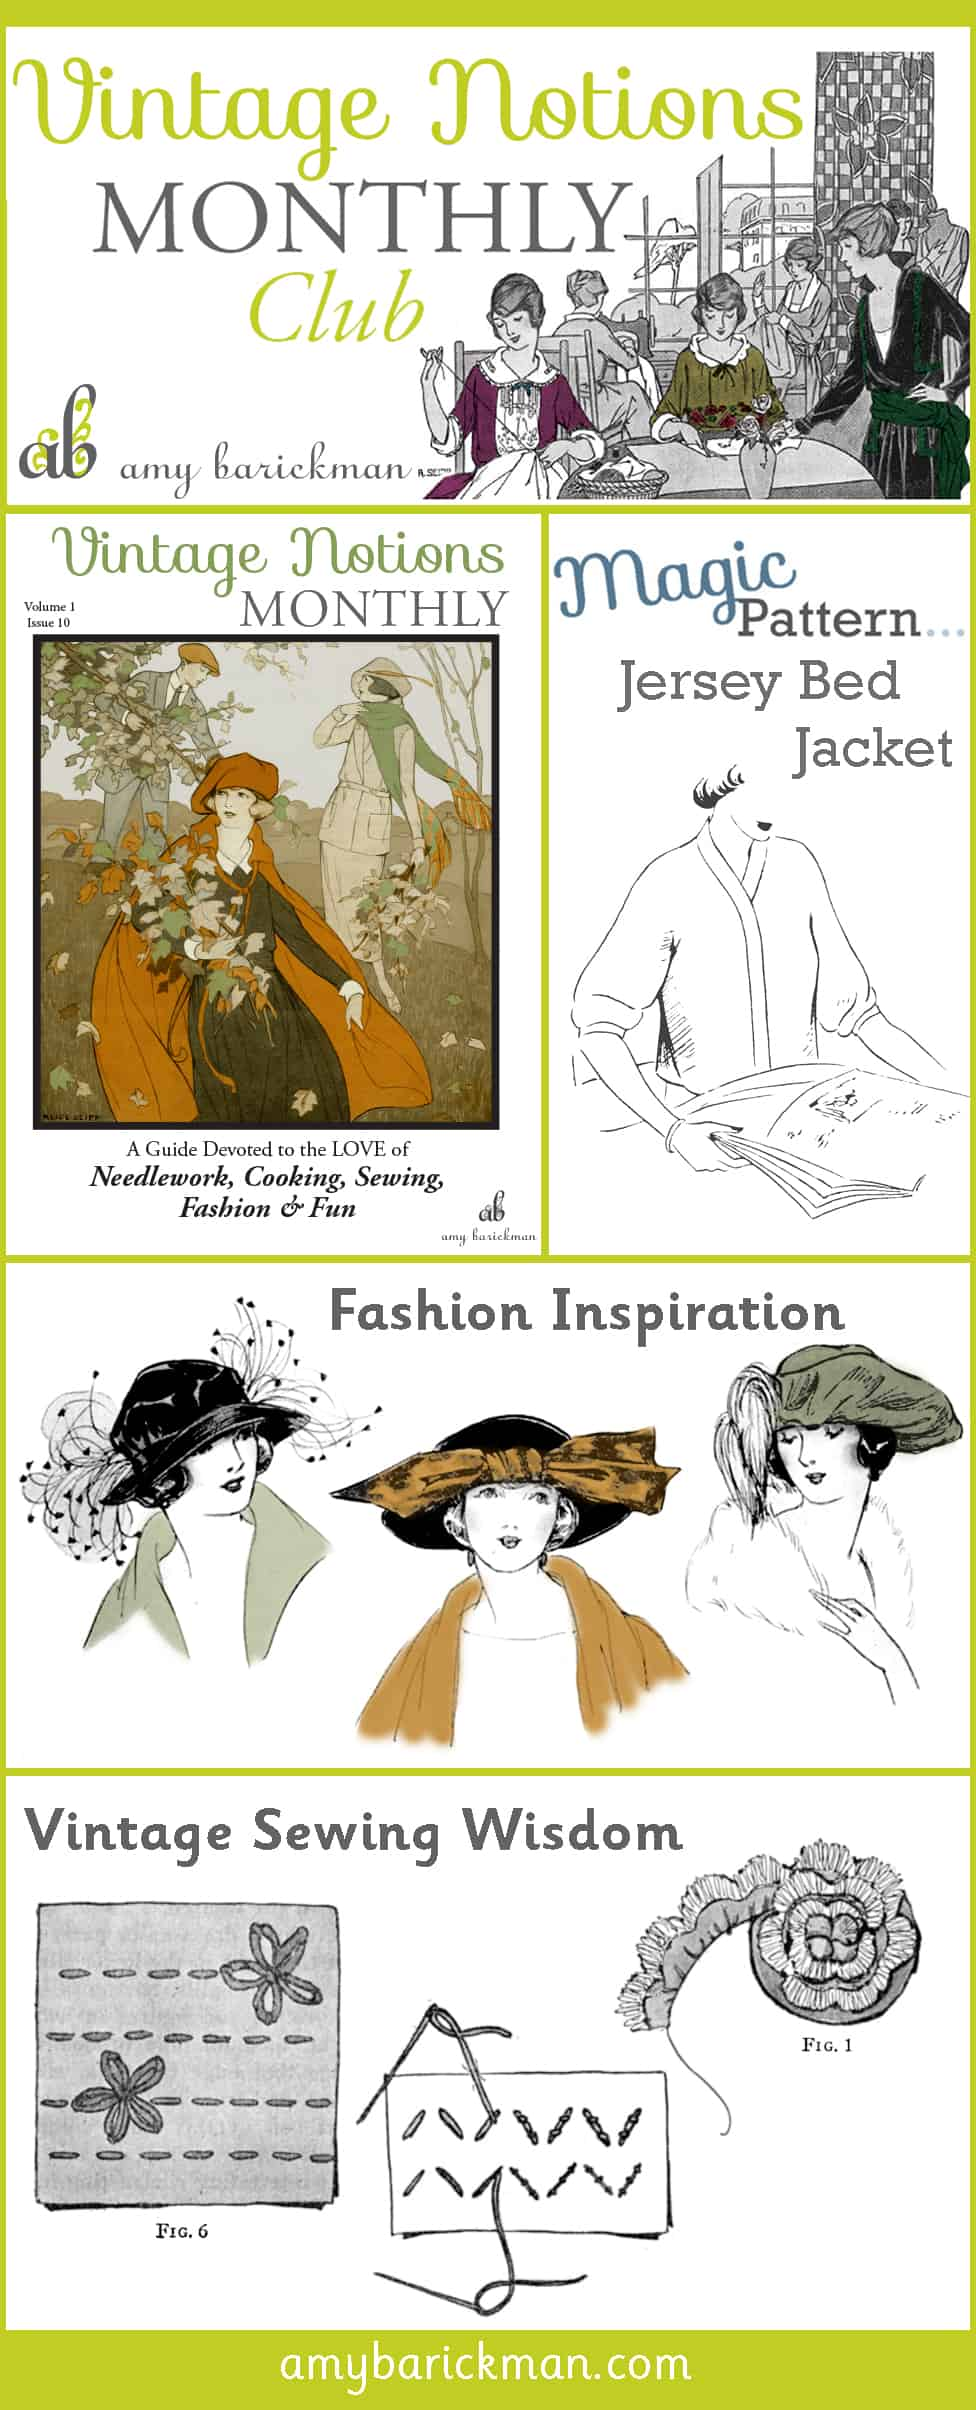 Vintage Notions Monthly is a peek back in time, celebrating the domestic arts, and wisdom of days gone by!